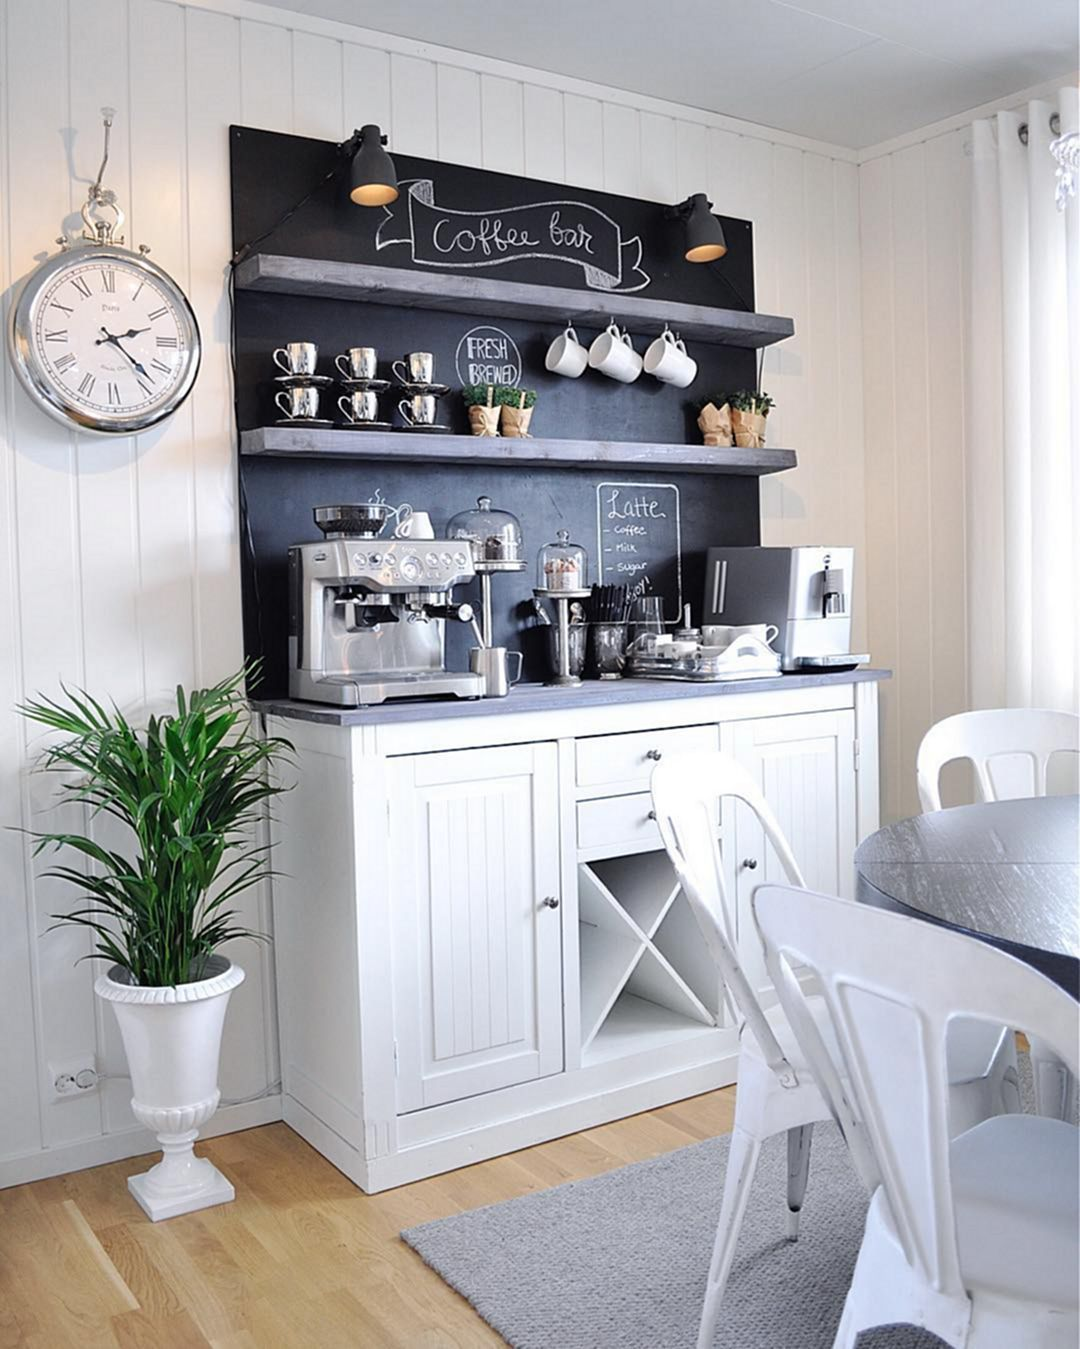 Superb Elegant Home Coffee Bar Design And Decor Ideas 14110 U2013 DECOOR